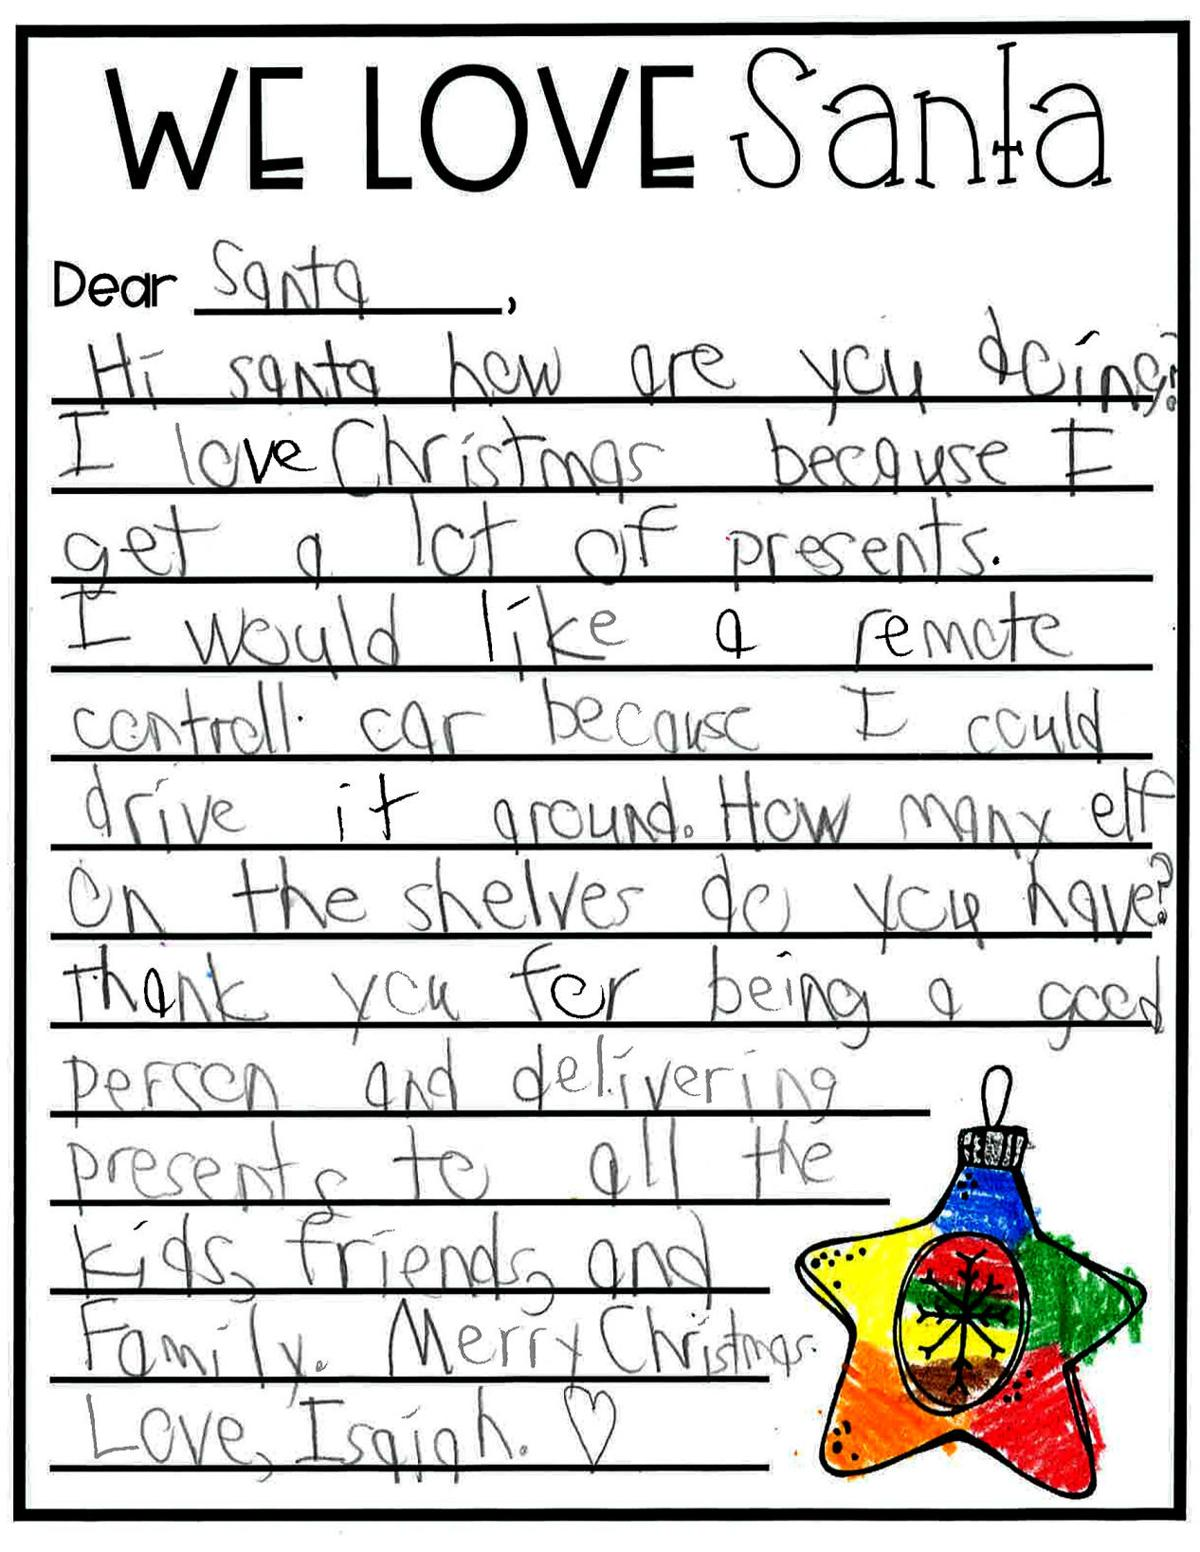 Letters to Santa: Isaiah